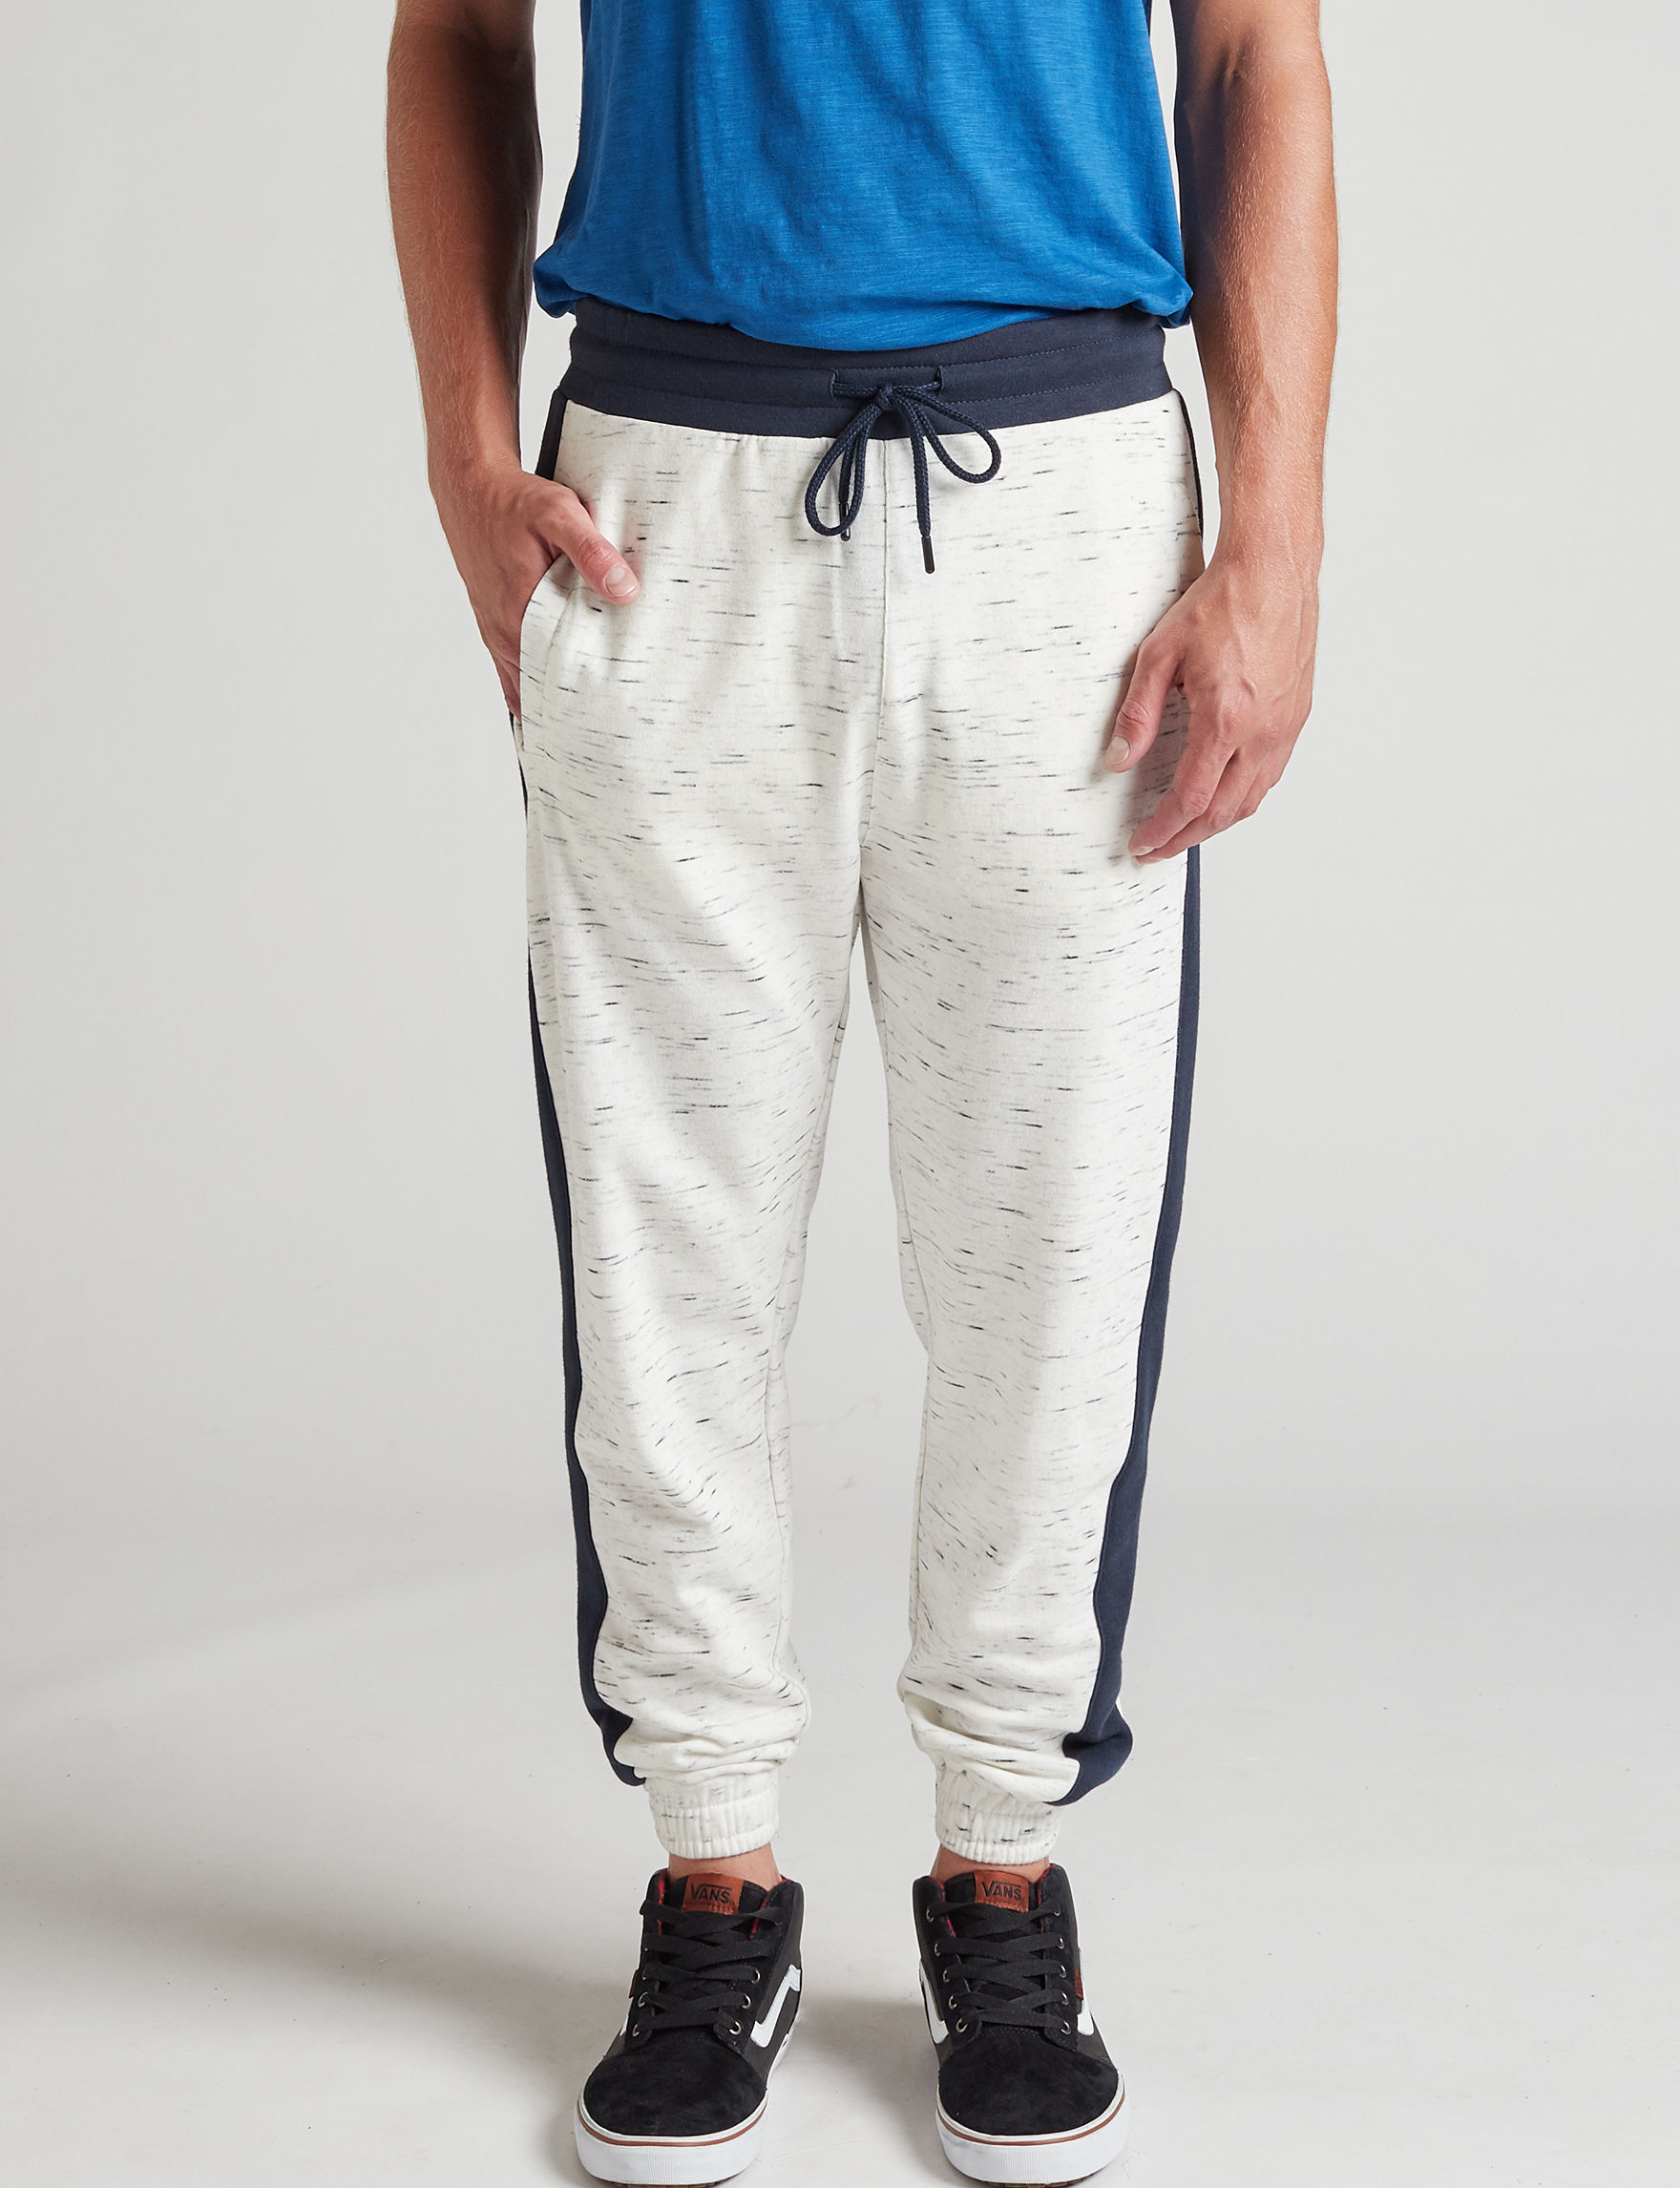 Rustic Blue White / Navy Jogger